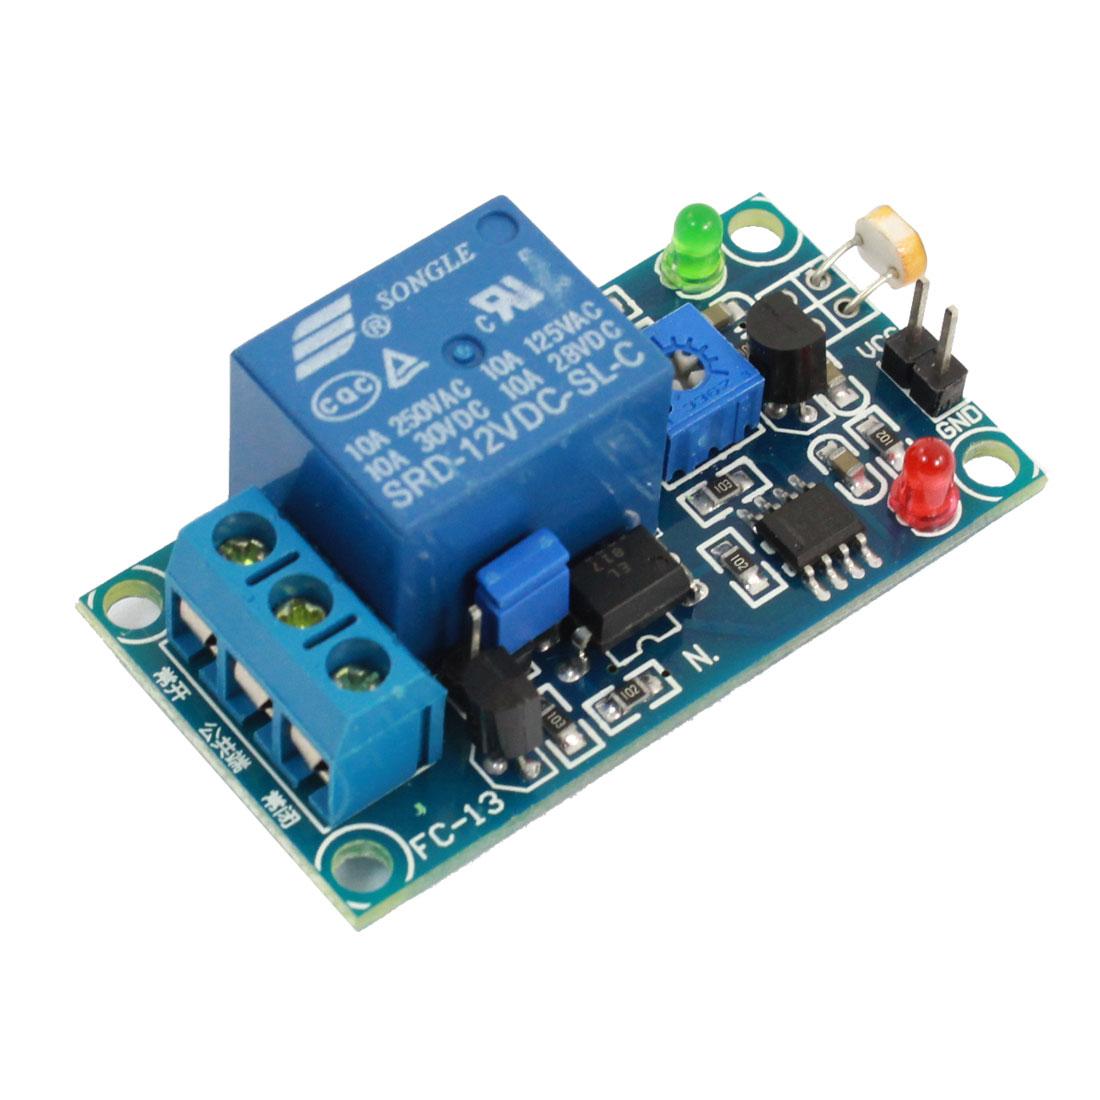 DC 12V Photosensitive Resistance Light Sensitive Sensor Relay Module